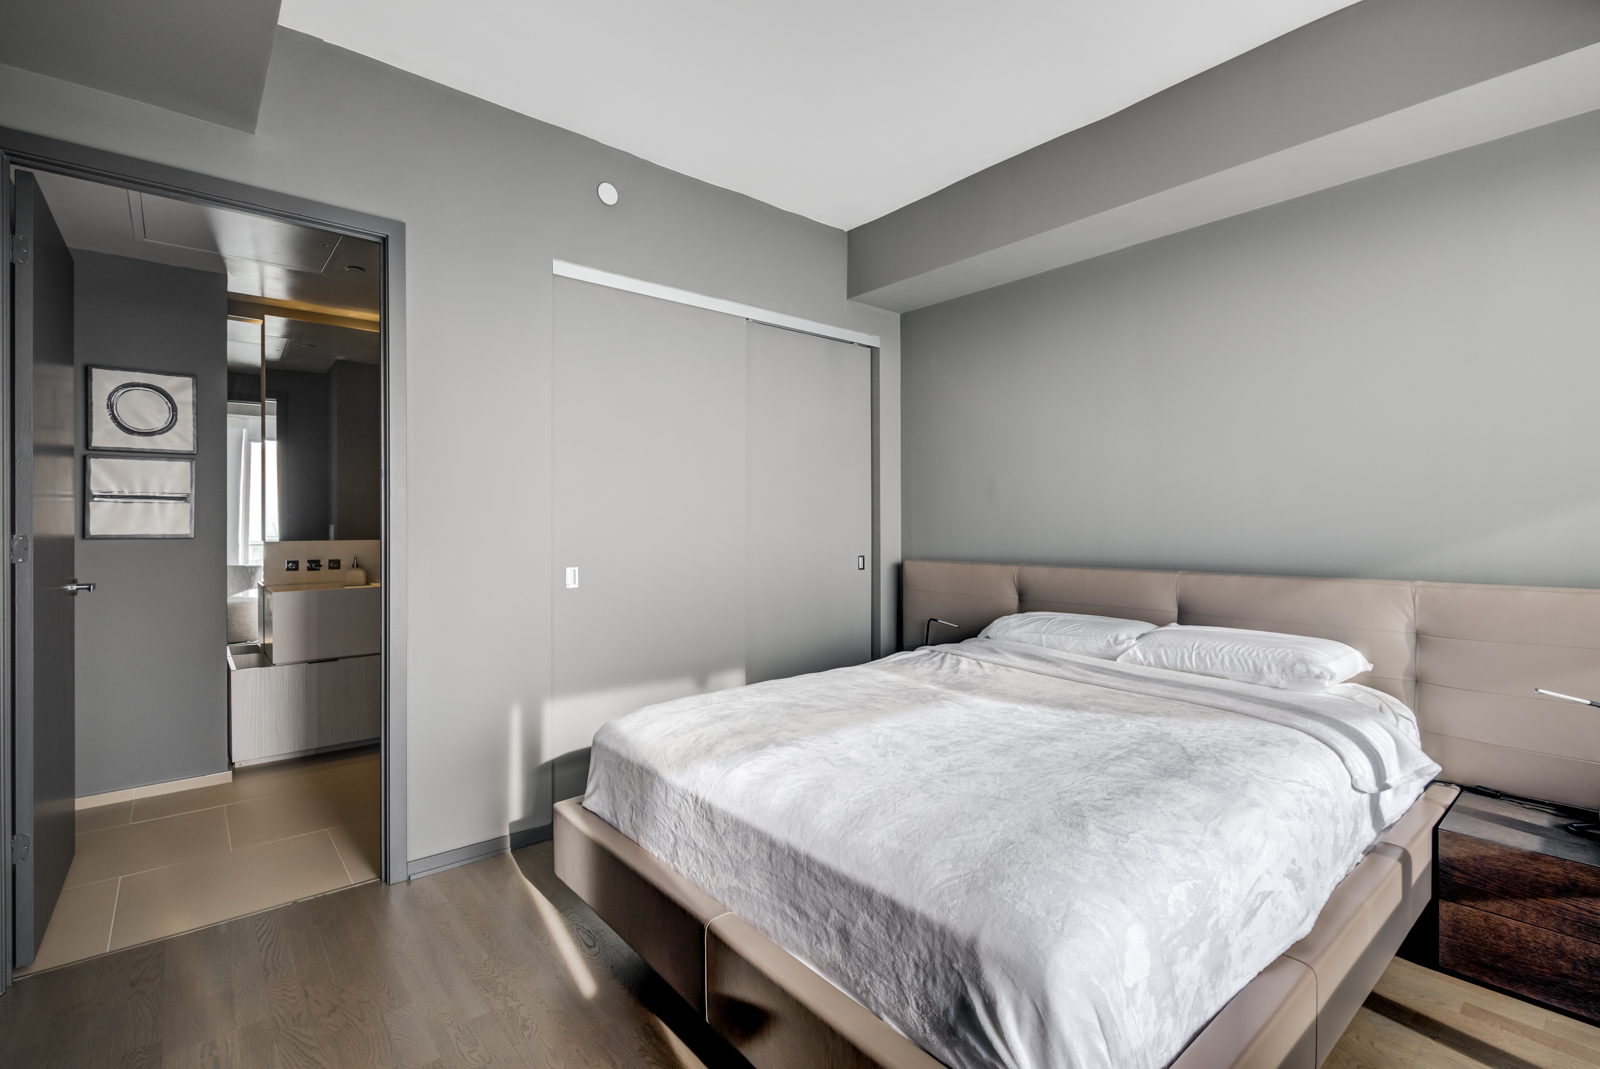 Queen-sized bed with white covers; closet with gray doors (closed).